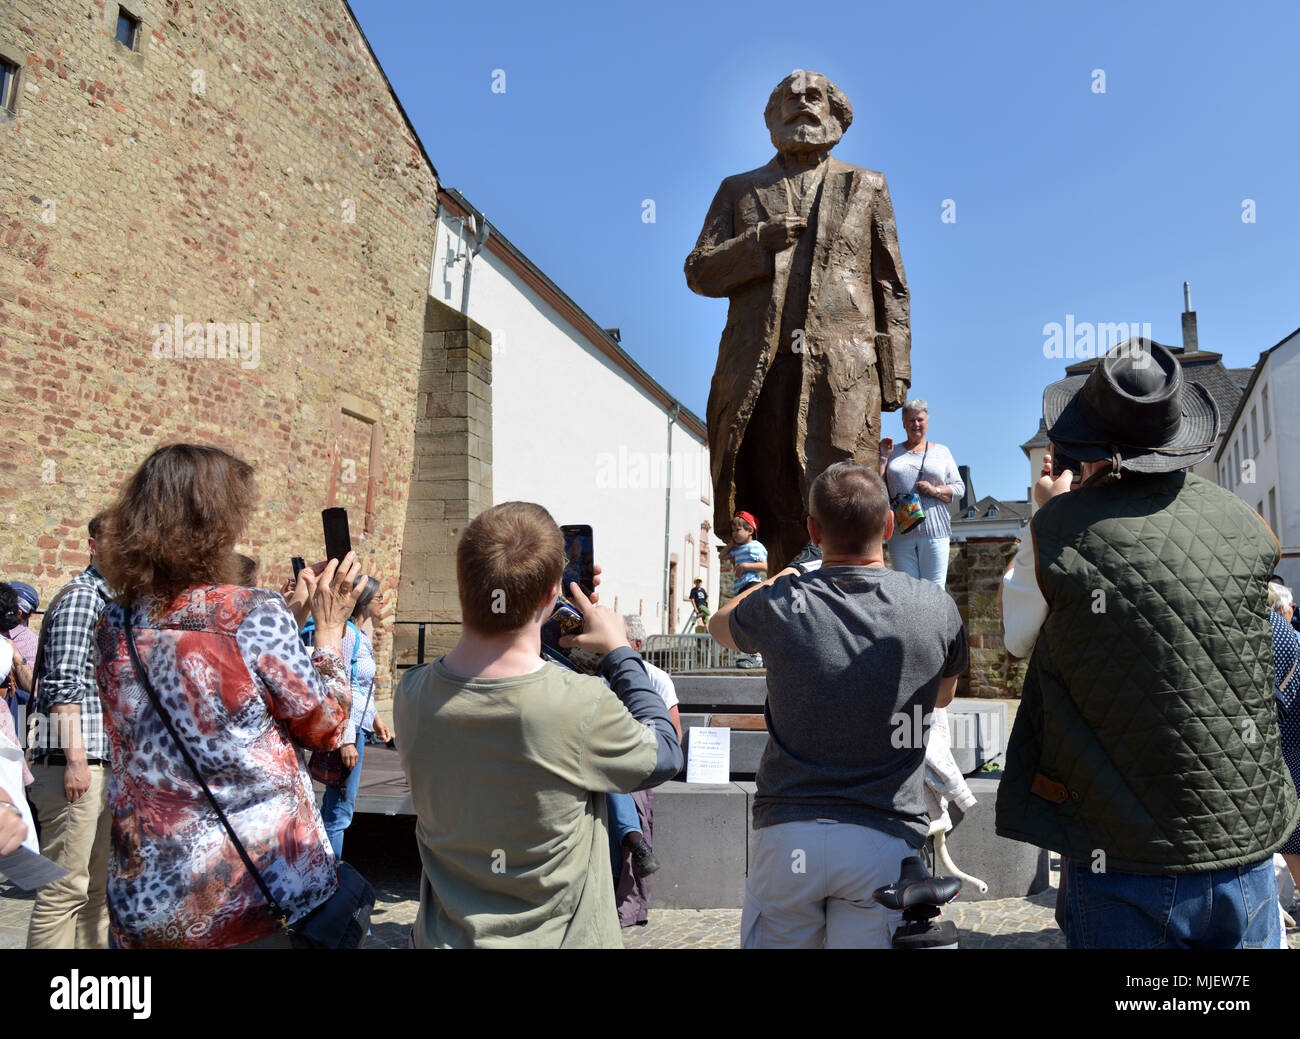 05 May 2018, Germany, Trier: A 2,3t, 4.4m statue of Karl Marx made by Chinese artist Wu Weishan is revealed in Marx's city of birth to celebrate the thinker's 200th birthday. The statue is a gift from the Chinese government. Photo: Harald Tittel/dpa Stock Photo